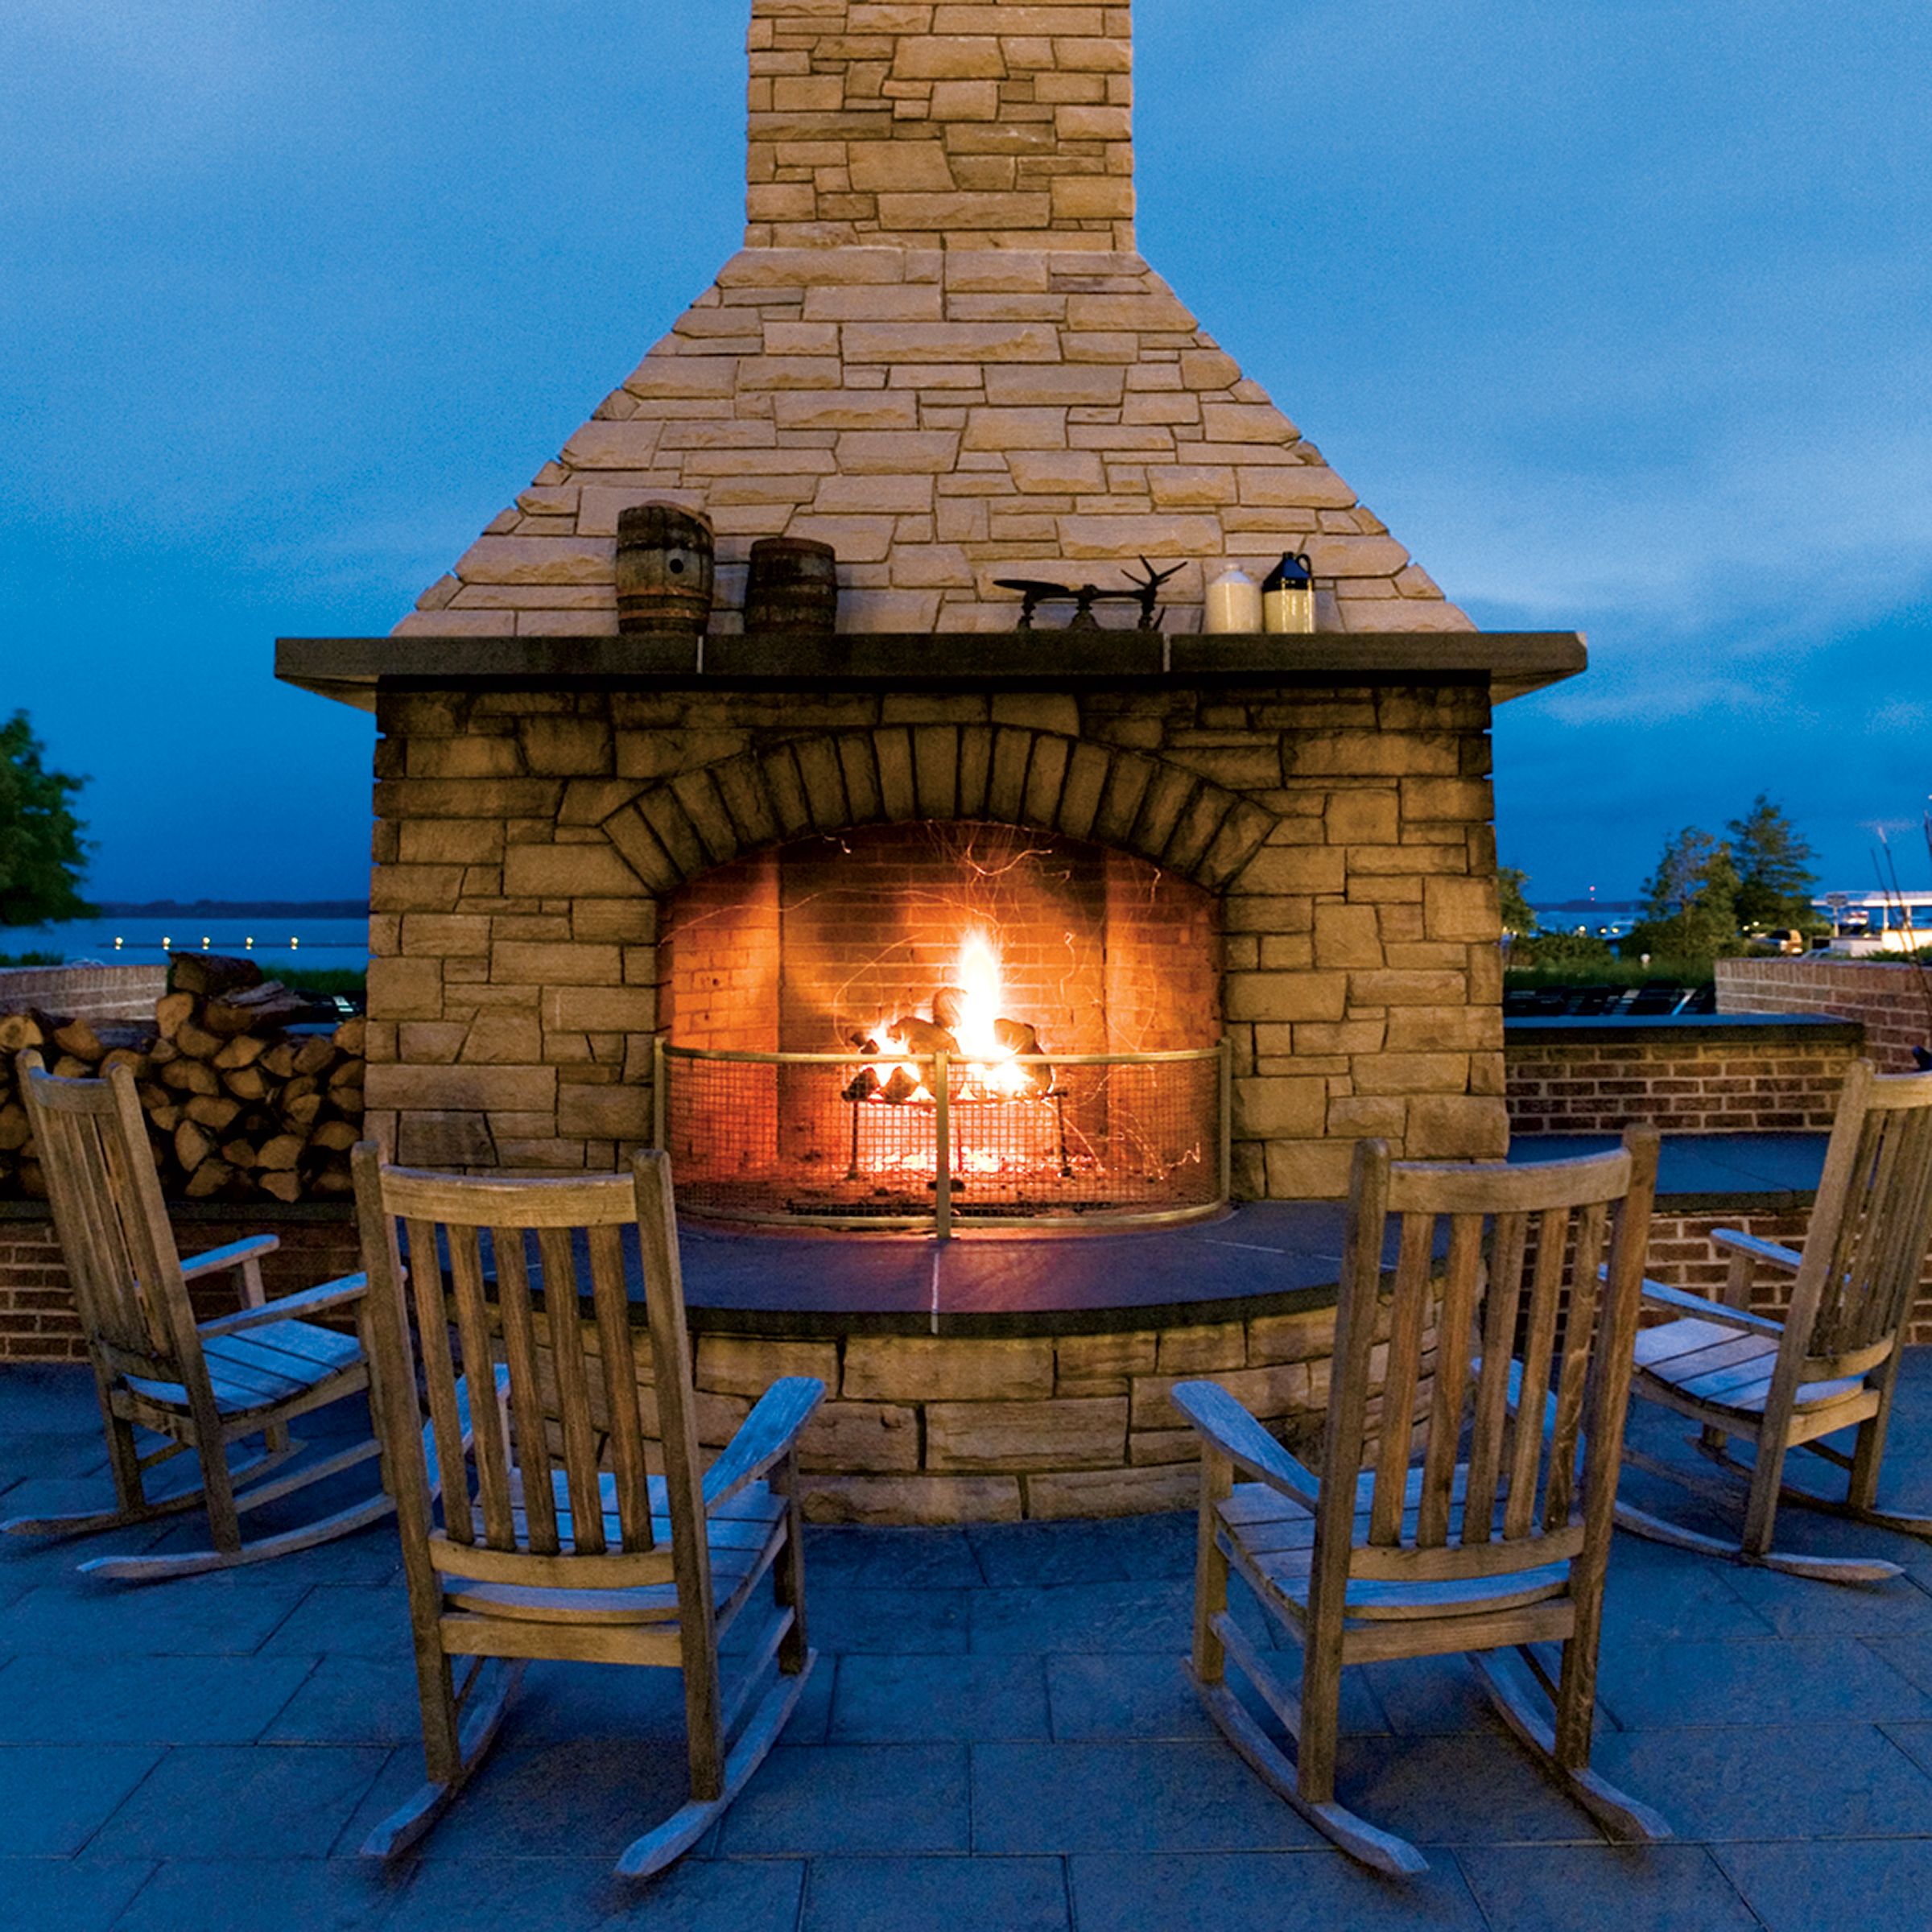 The cozy fireplace at the Hyatt Chesapeake. Photograph Courtesy of Hyatt Chesapeake.